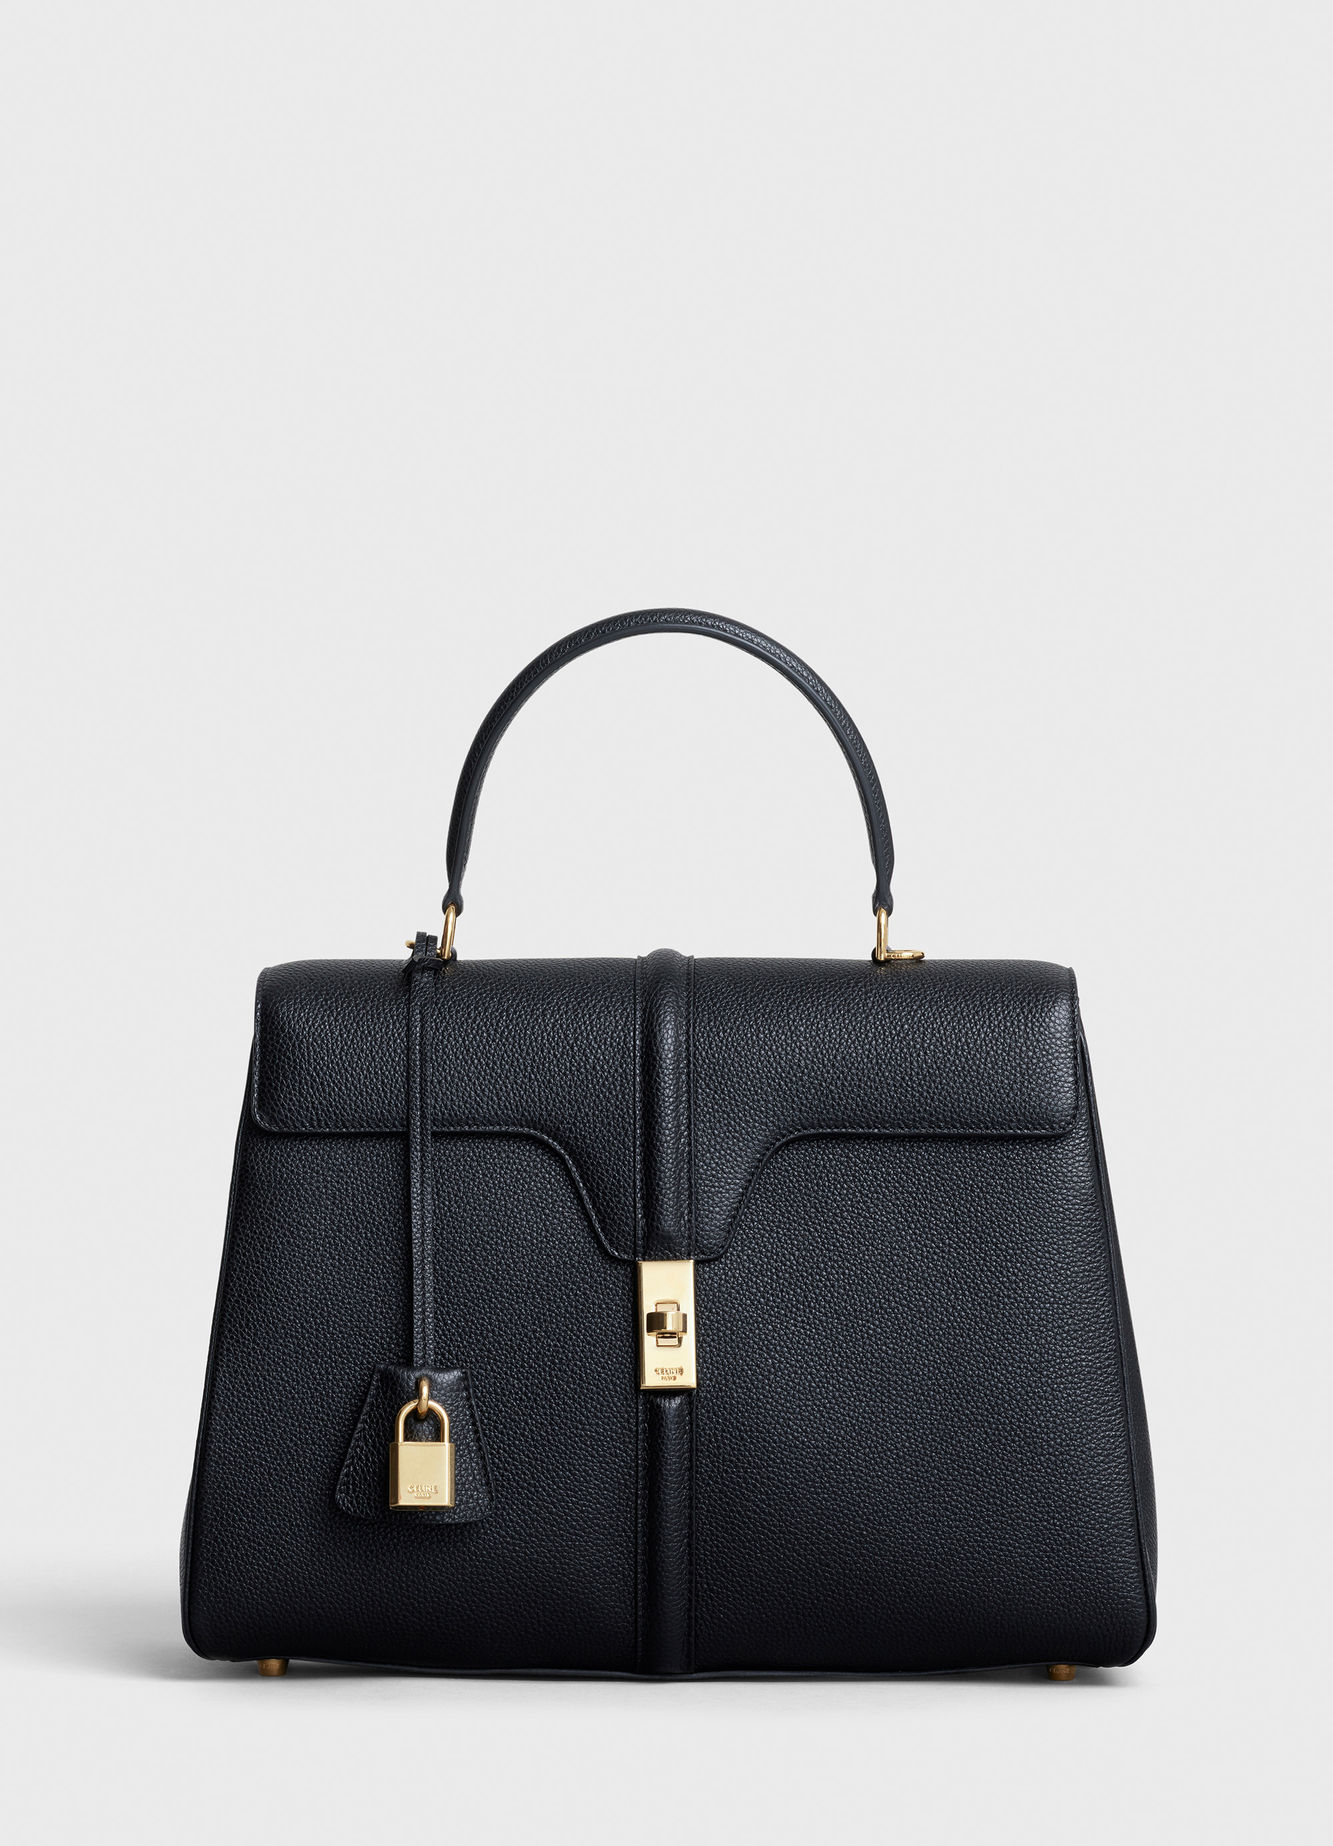 CELINE MEDIUM 16 BAG IN SATINATED CALFSKIN 187373 BLACK